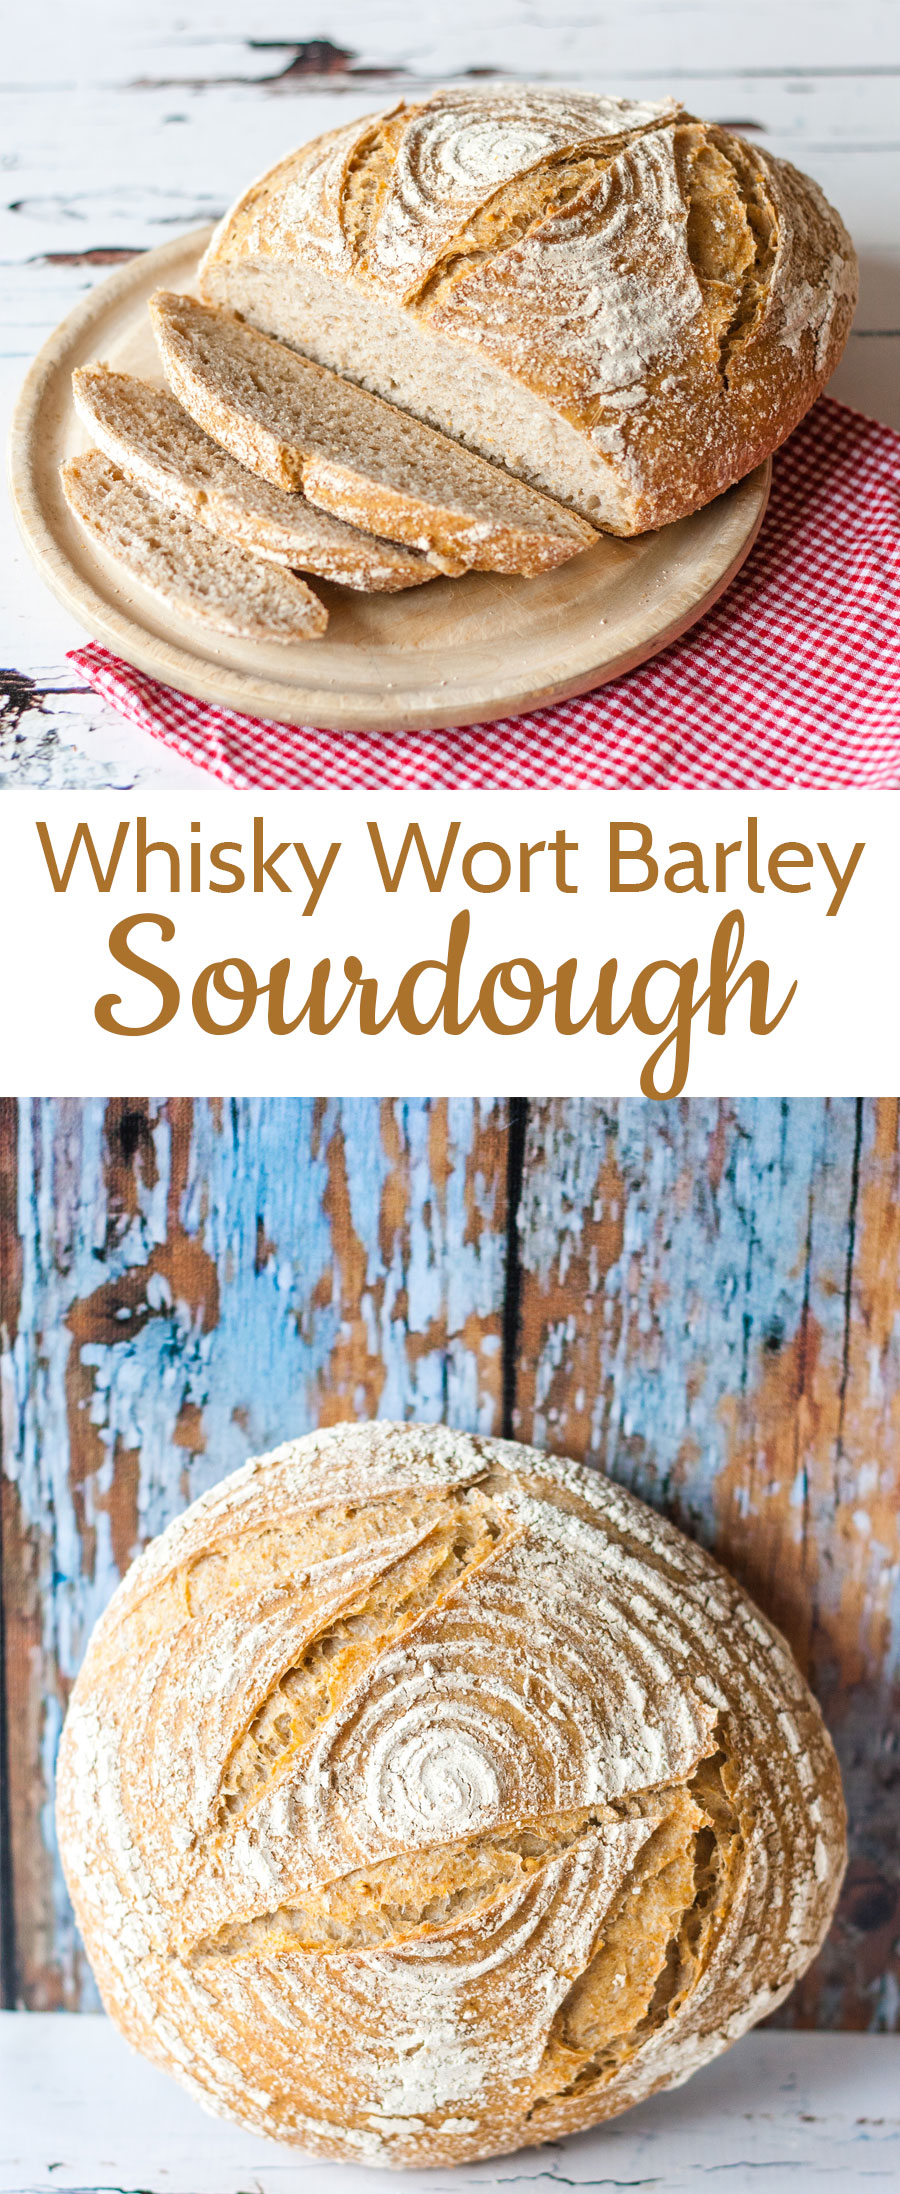 A barley sourdough loaf inspired from driving through the fields of Aberdeenshire and Moray after a visit to the Aberlour distillery